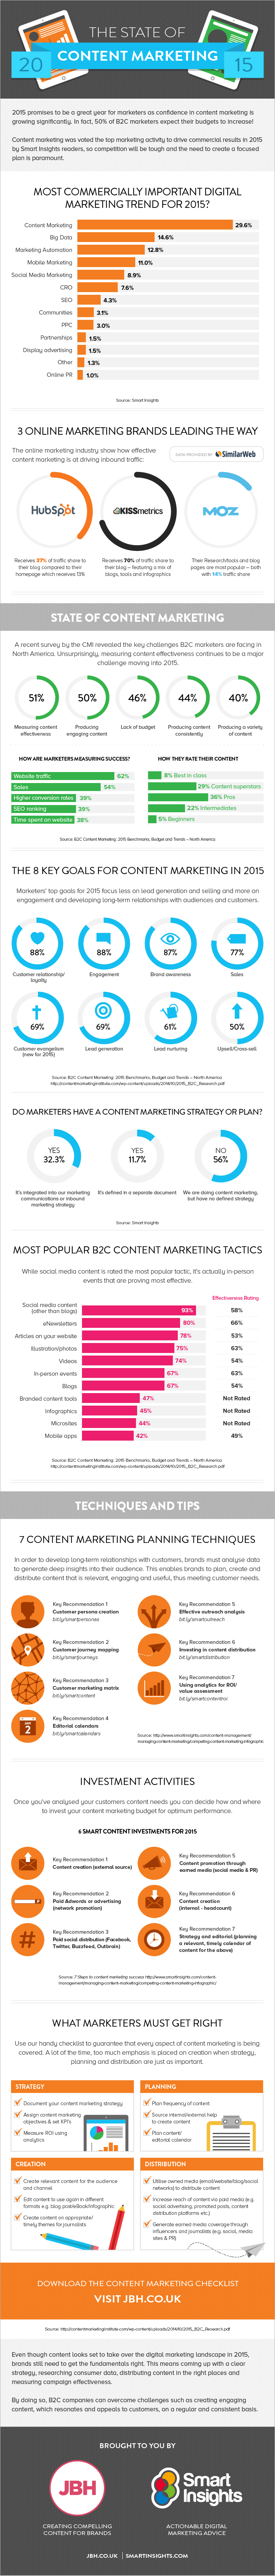 State-of-Content-Marketing-20151